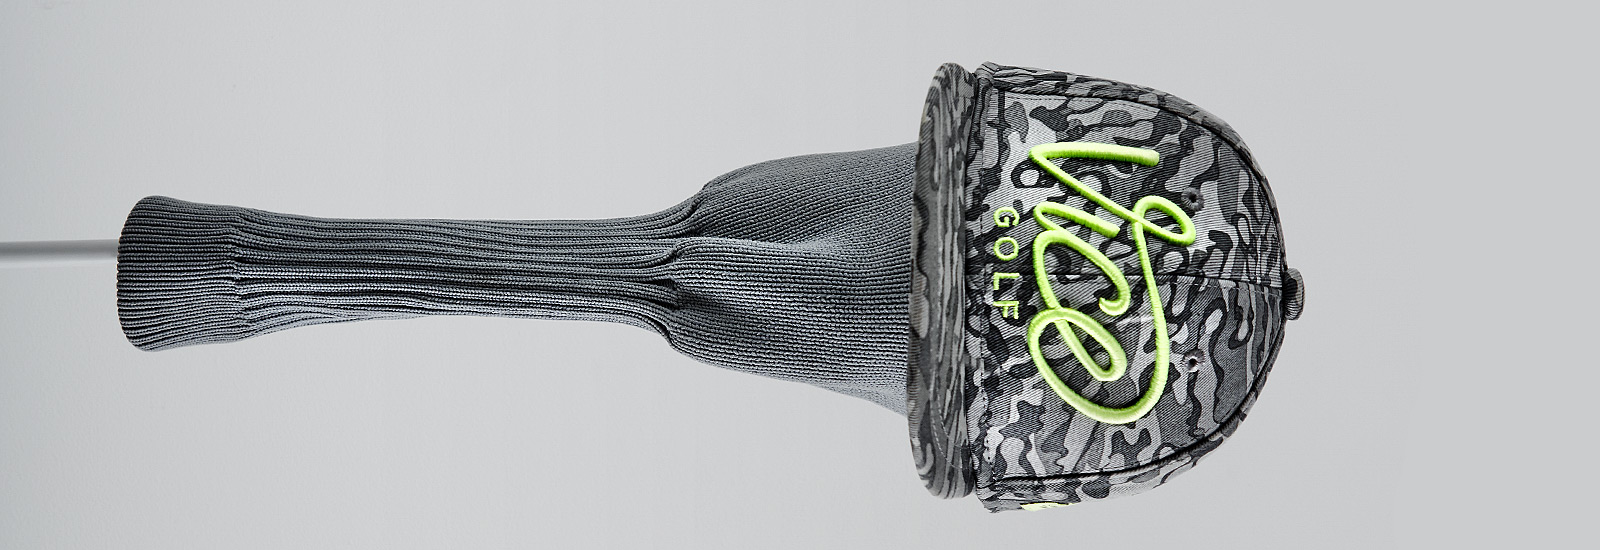 headcover_camo_slide01_desktop.jpg